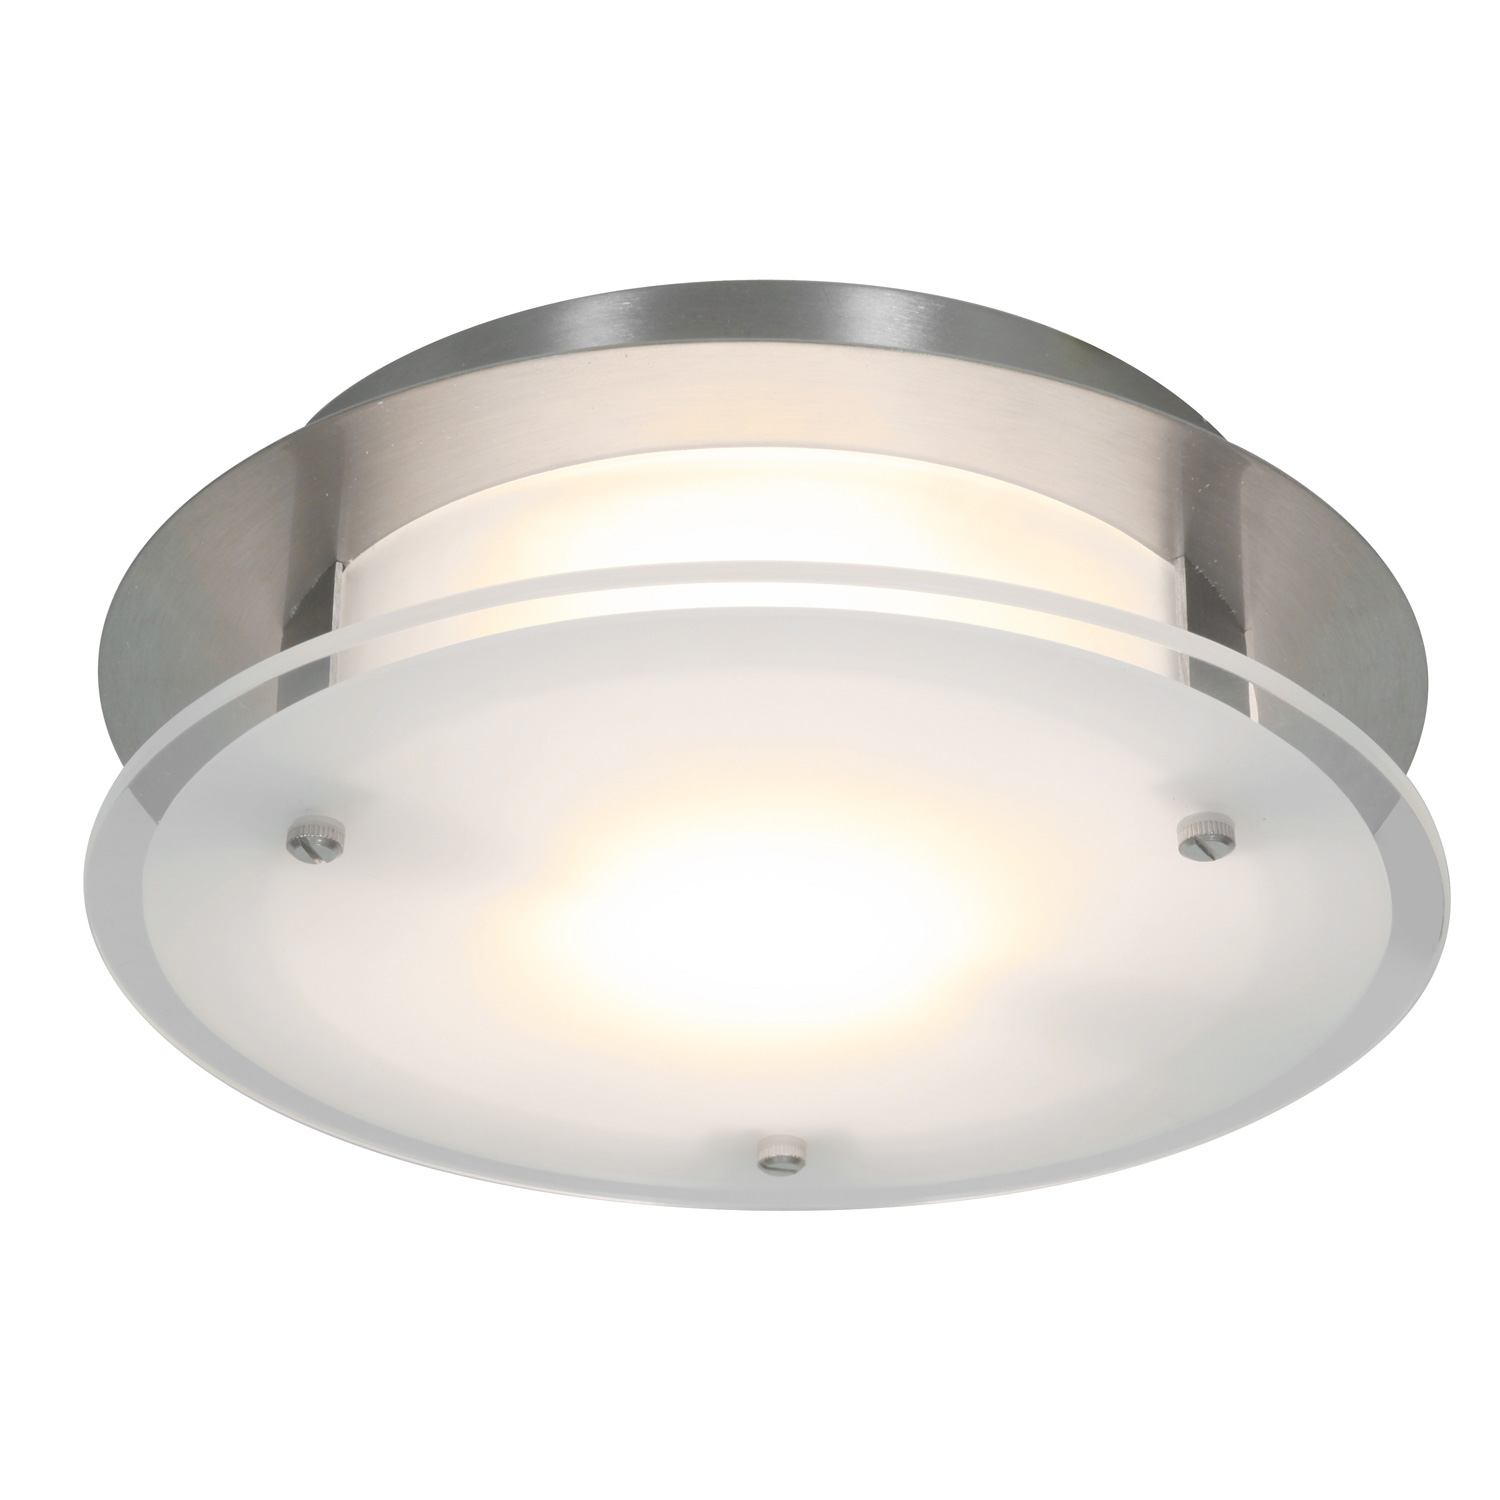 Vision Round Wall Ceiling Light By